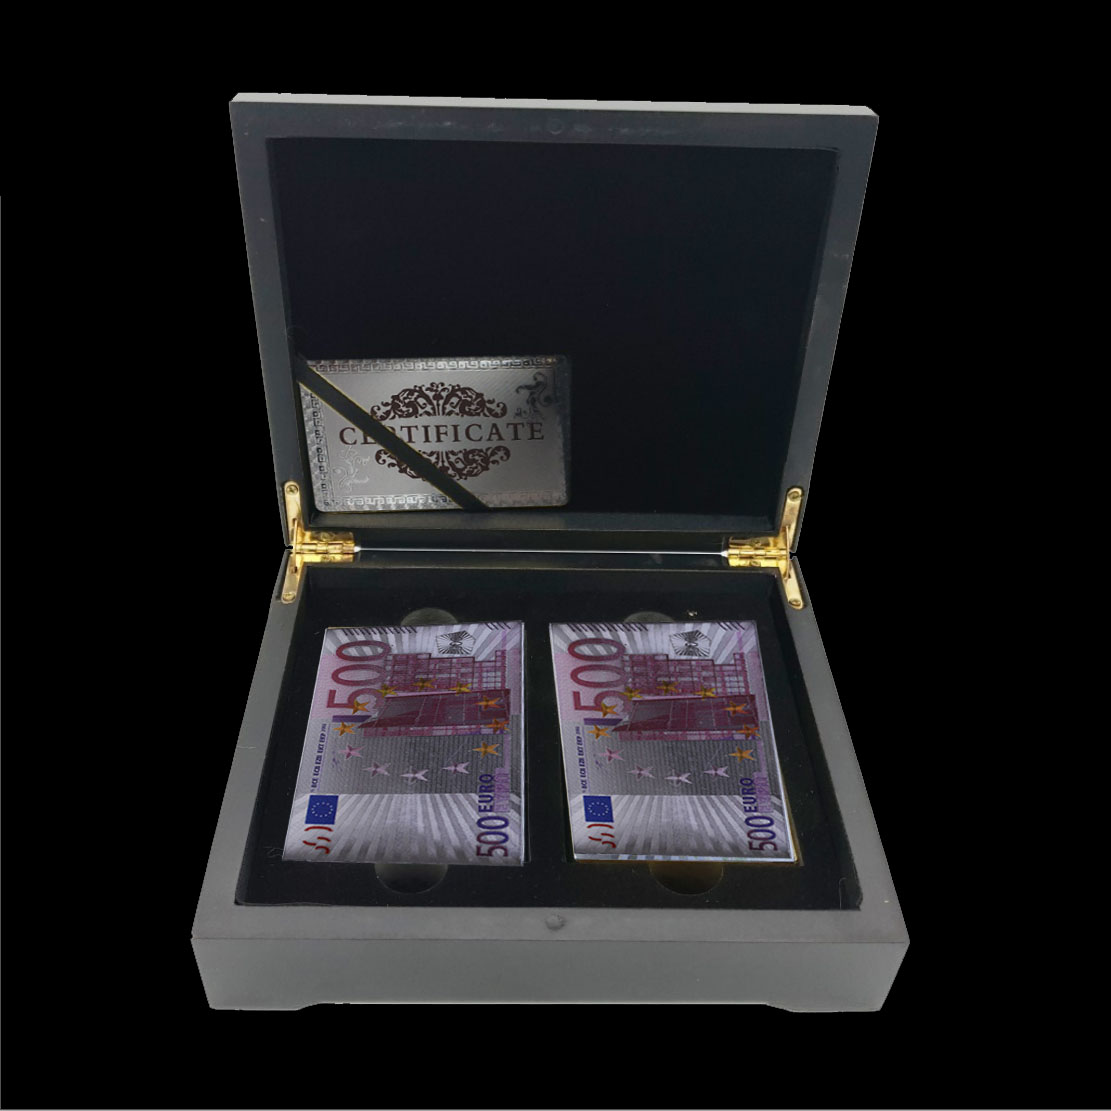 Waterproof Euro Style Playing Cards 24K Gold Foil Silver Poker Table Game Poker and Wooden Storage Box Personalized Gift